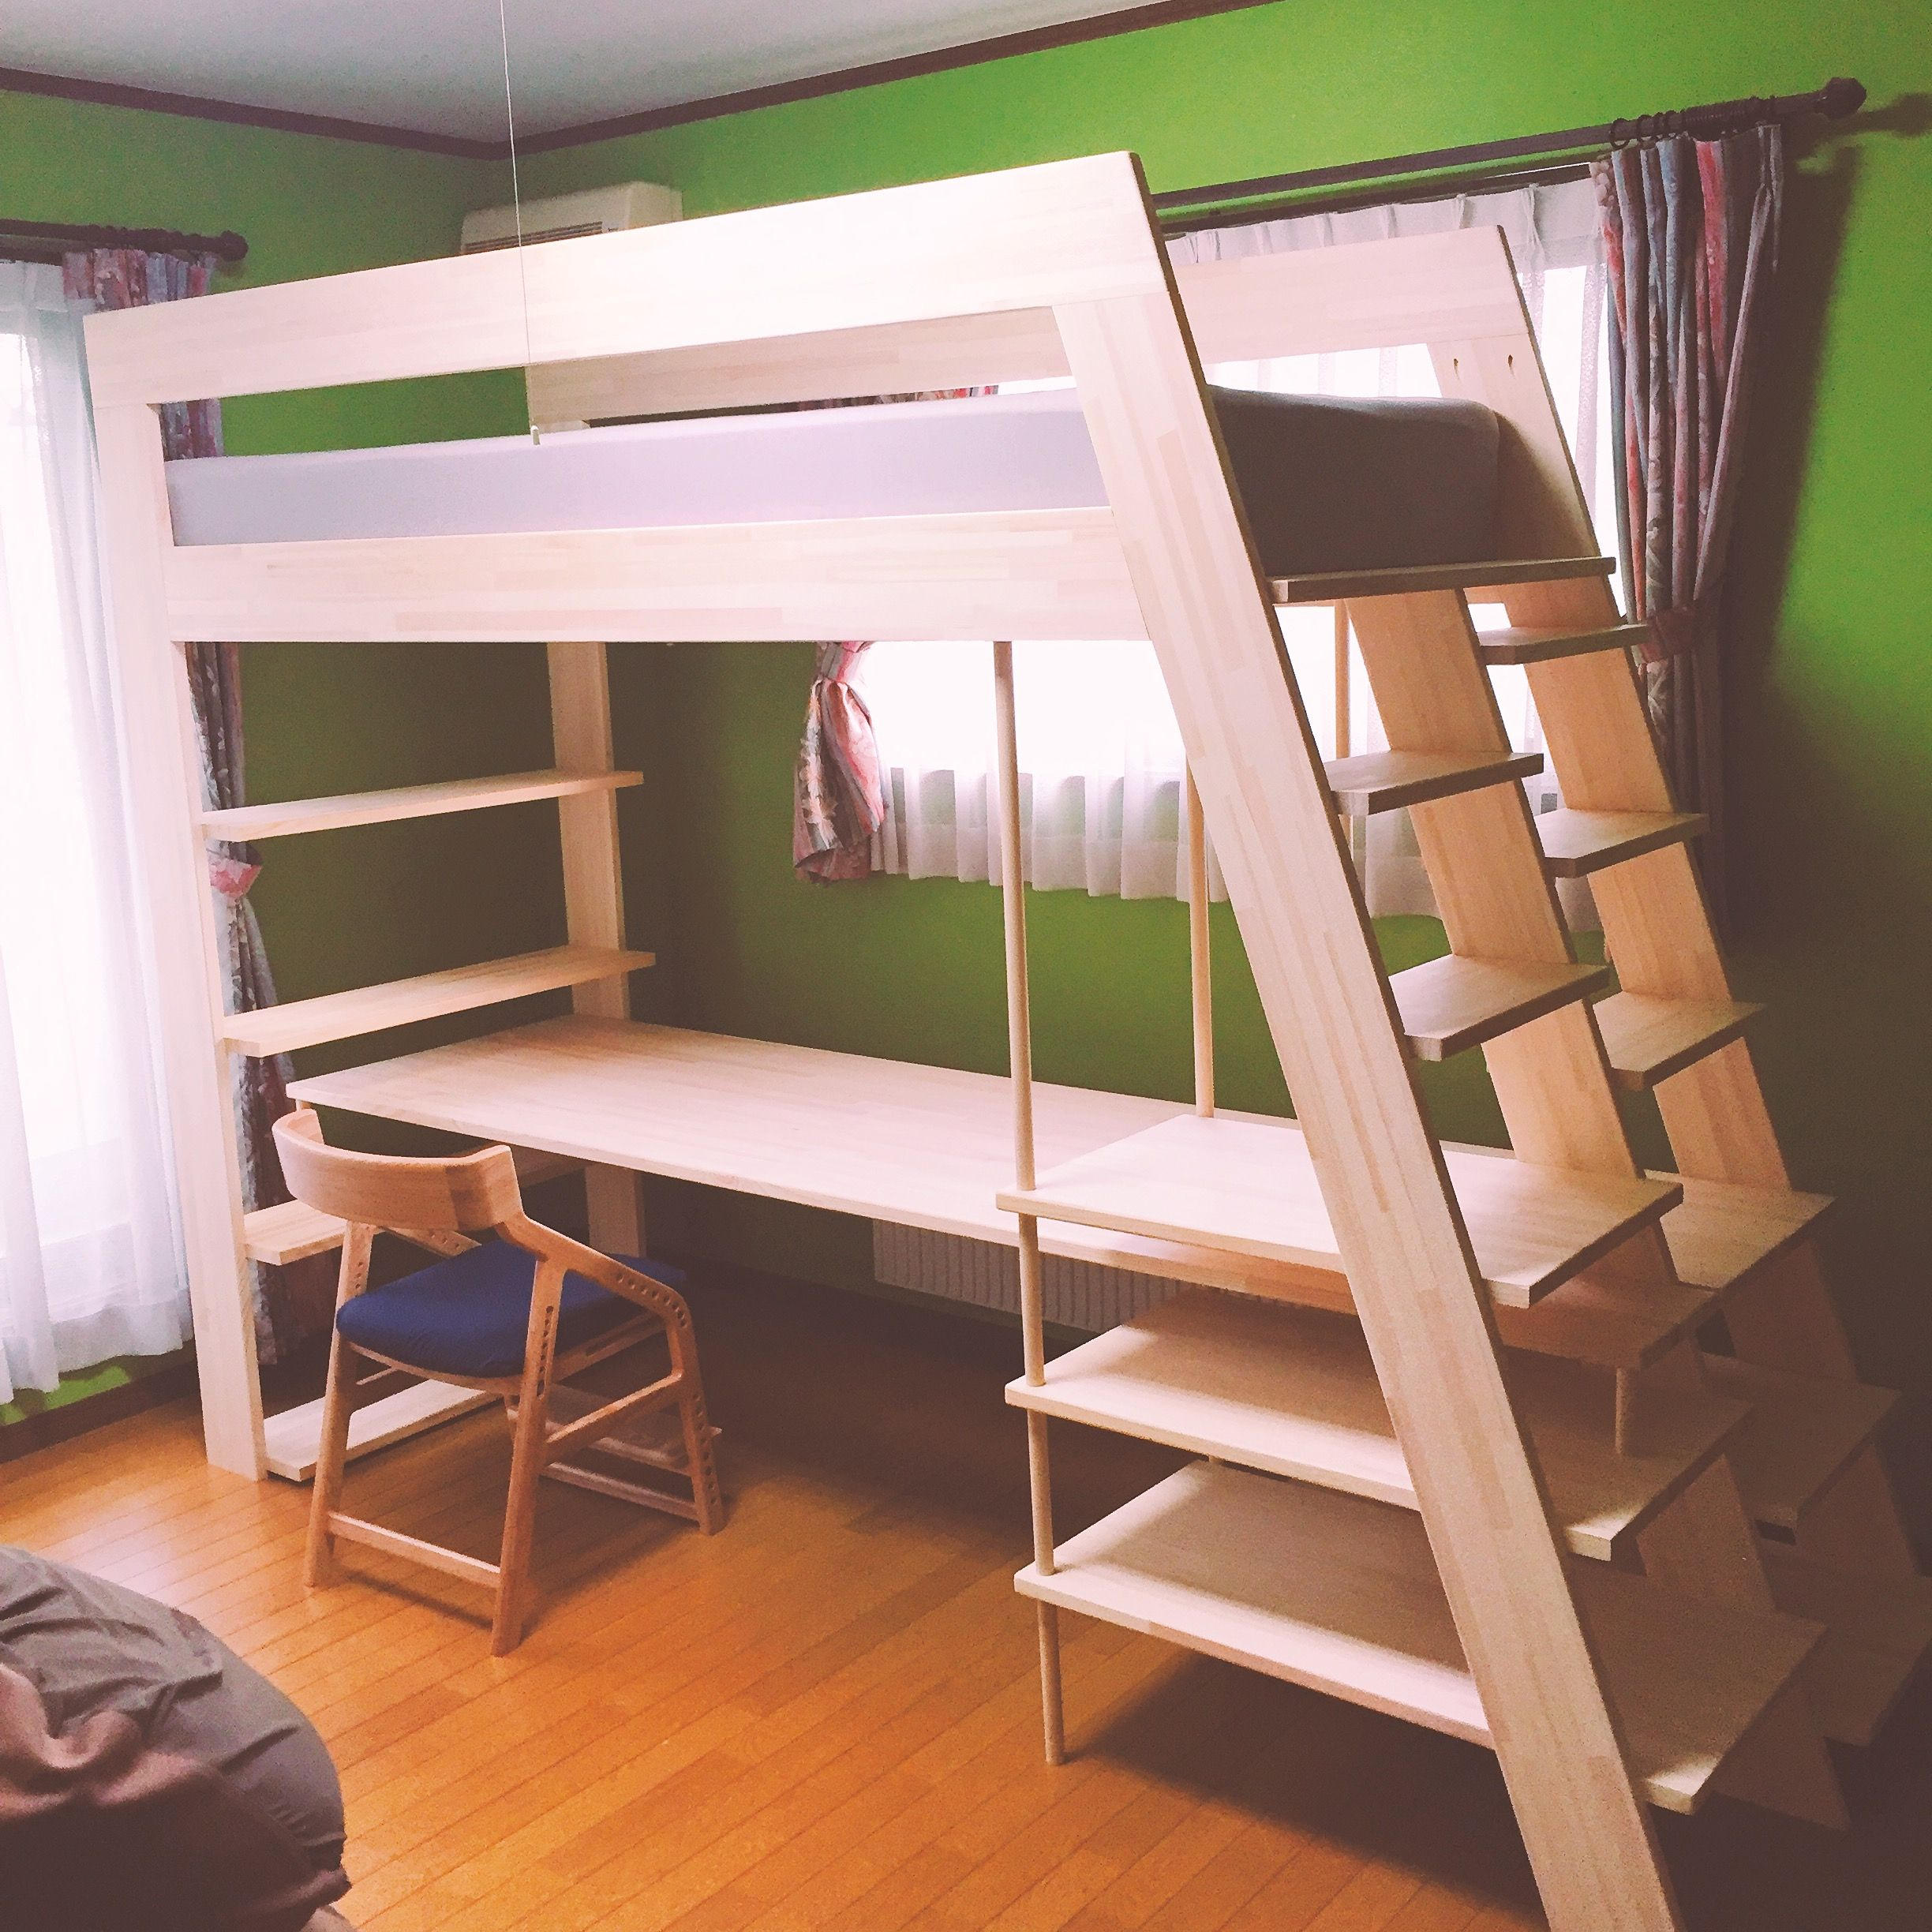 Space Saving Bedroom, Loft Beds, Bunk Bed, Kids Rooms Decor, Studio  Apartment, Furniture Projects, Diy Furniture, Kid Bedrooms, Joinery